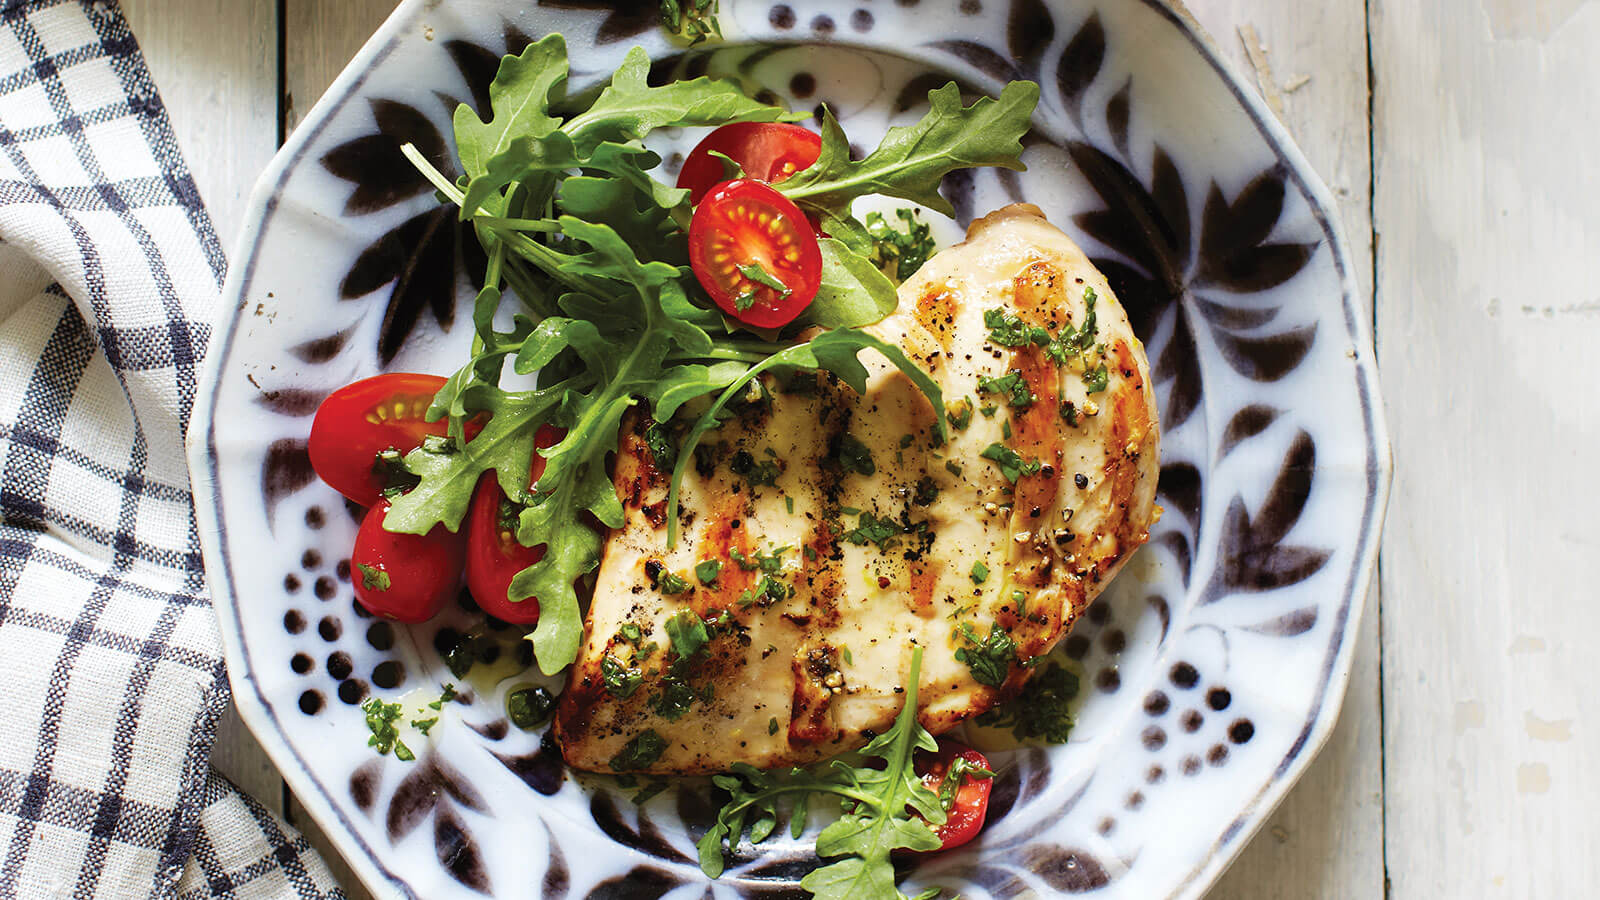 Marinated-Chicken-with-Basil-Drizzle